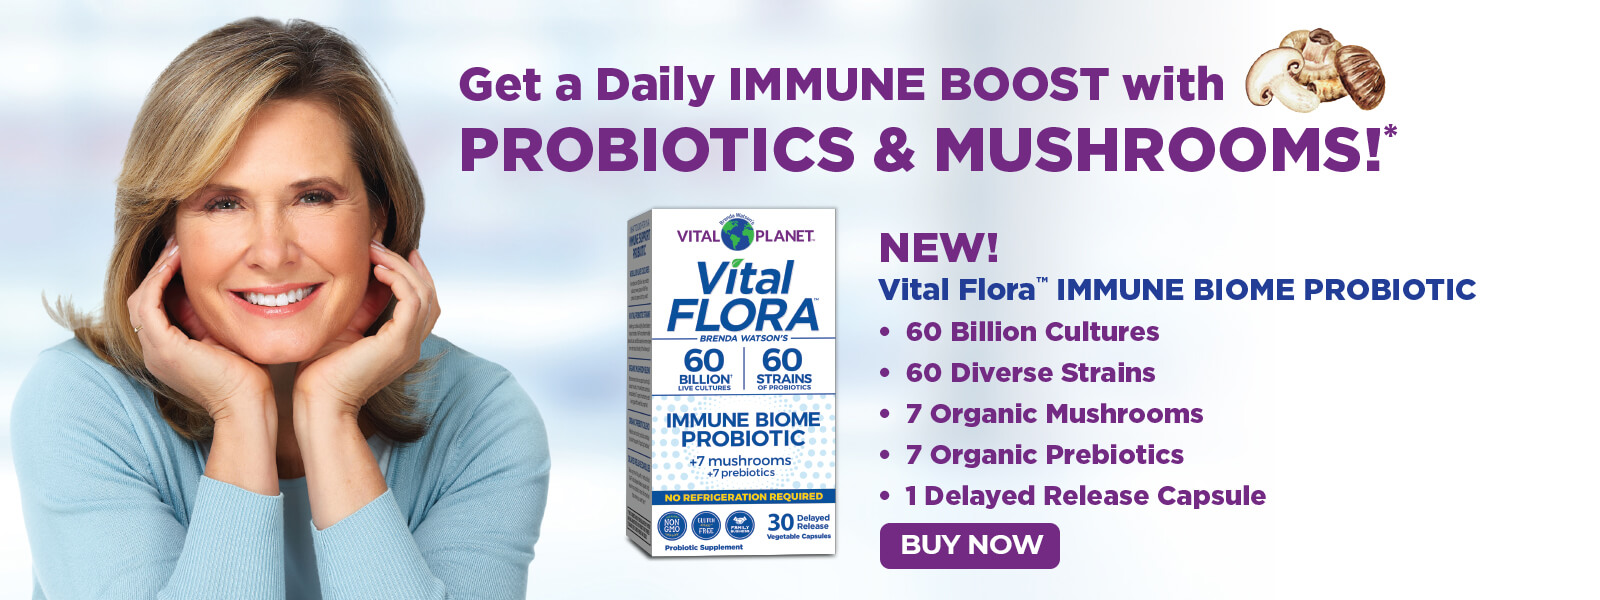 Immune Boost Probiotics and Mushrooms